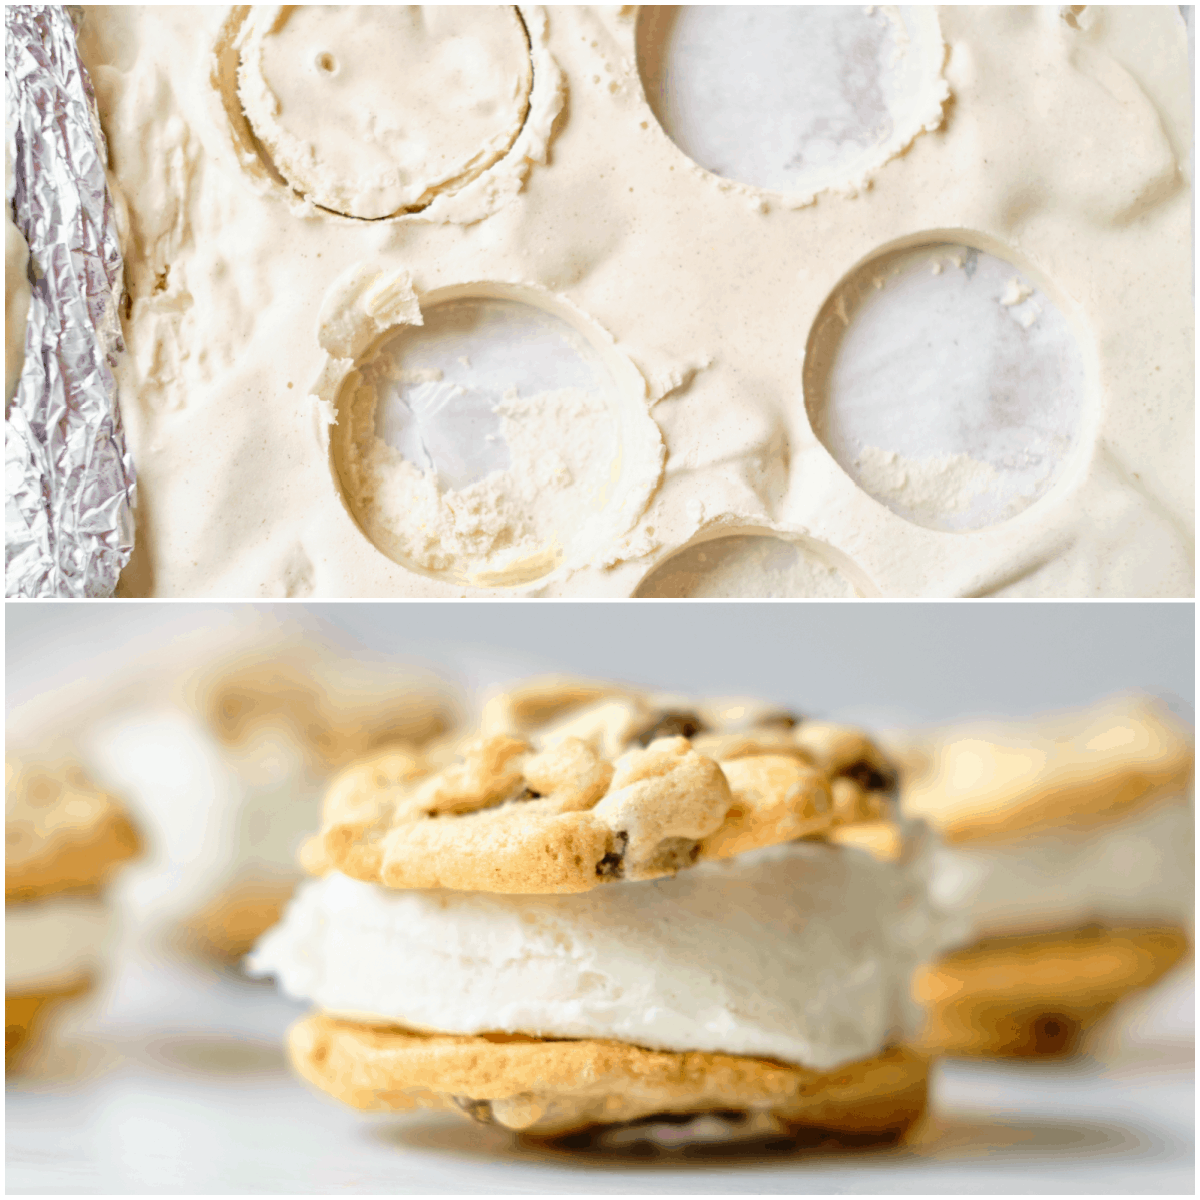 image collage showing the process for making an ice cream cookie sandwich